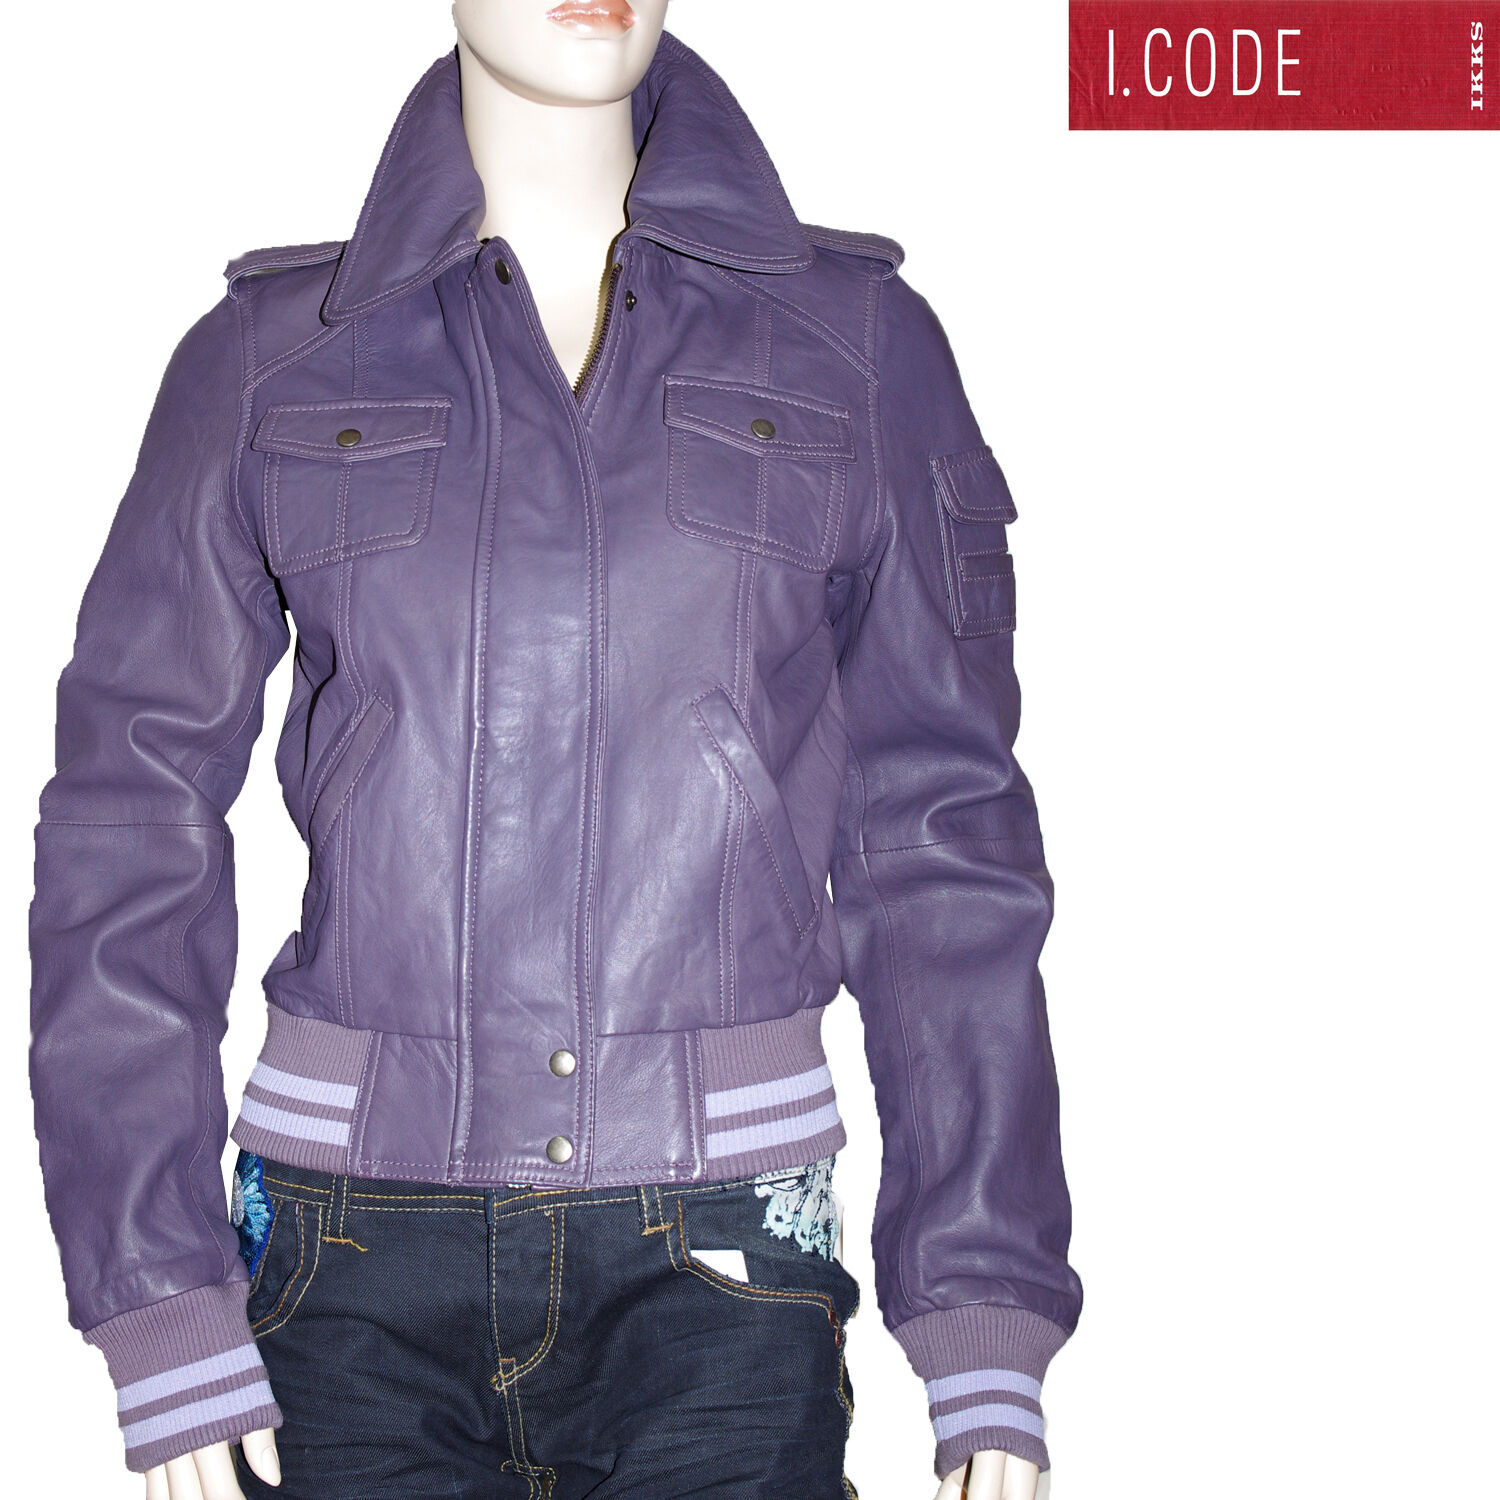 I.CODE by IKKS blouson court cuir purple parme